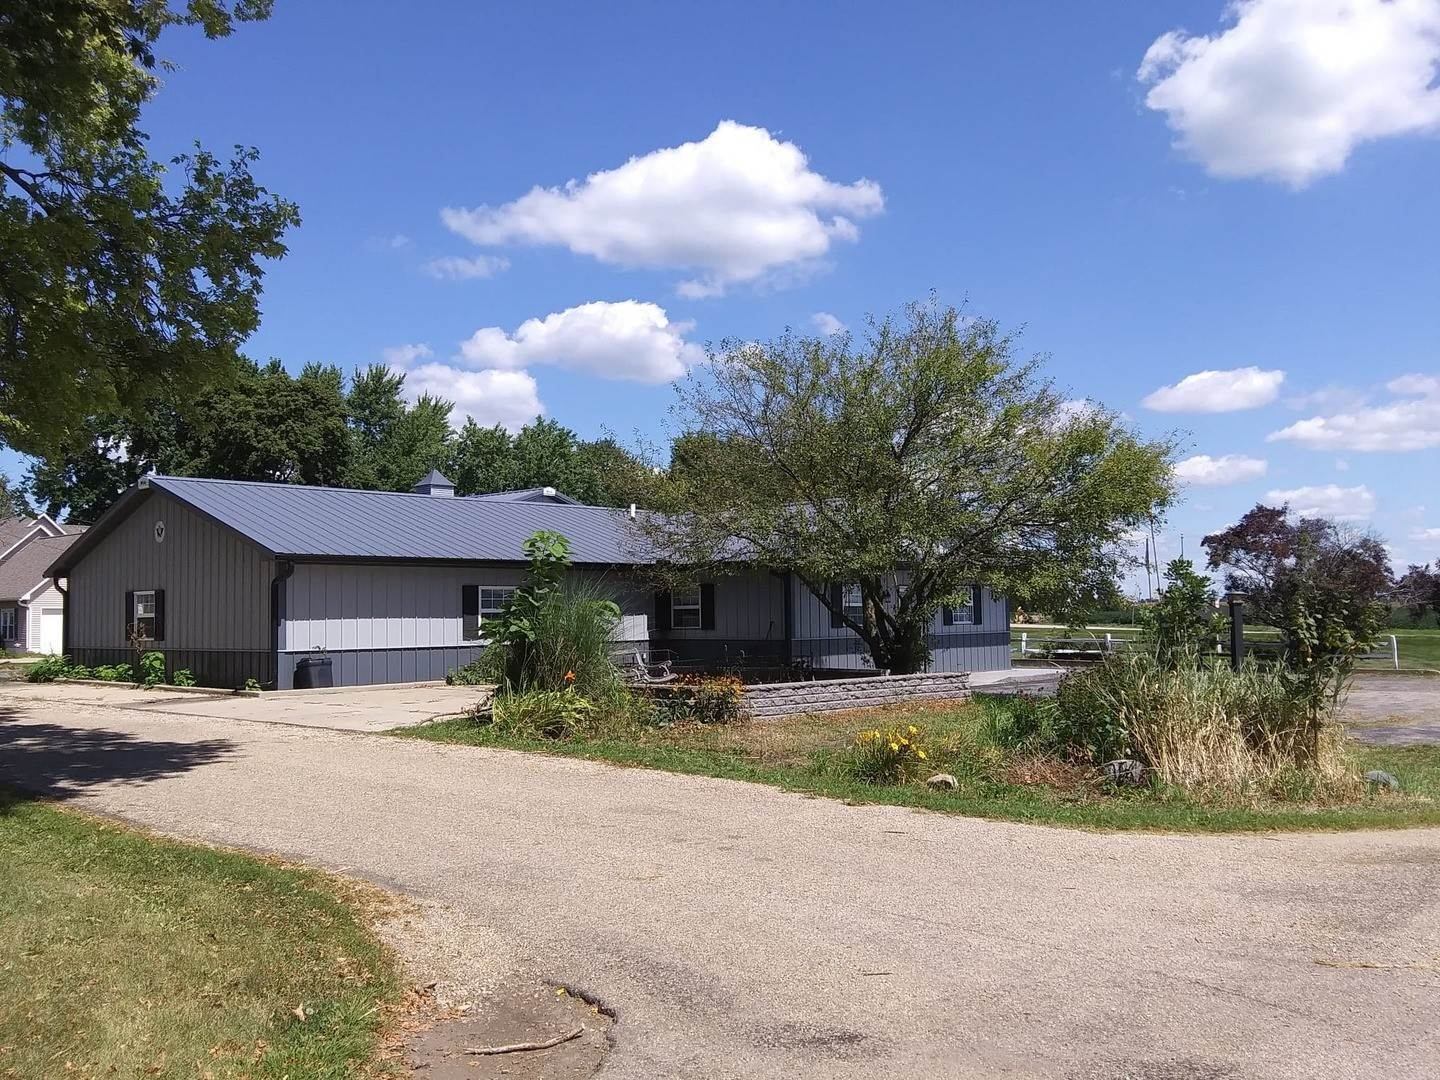 Commercial for Sale at 107 W Main Street McNabb, Illinois 61335 United States